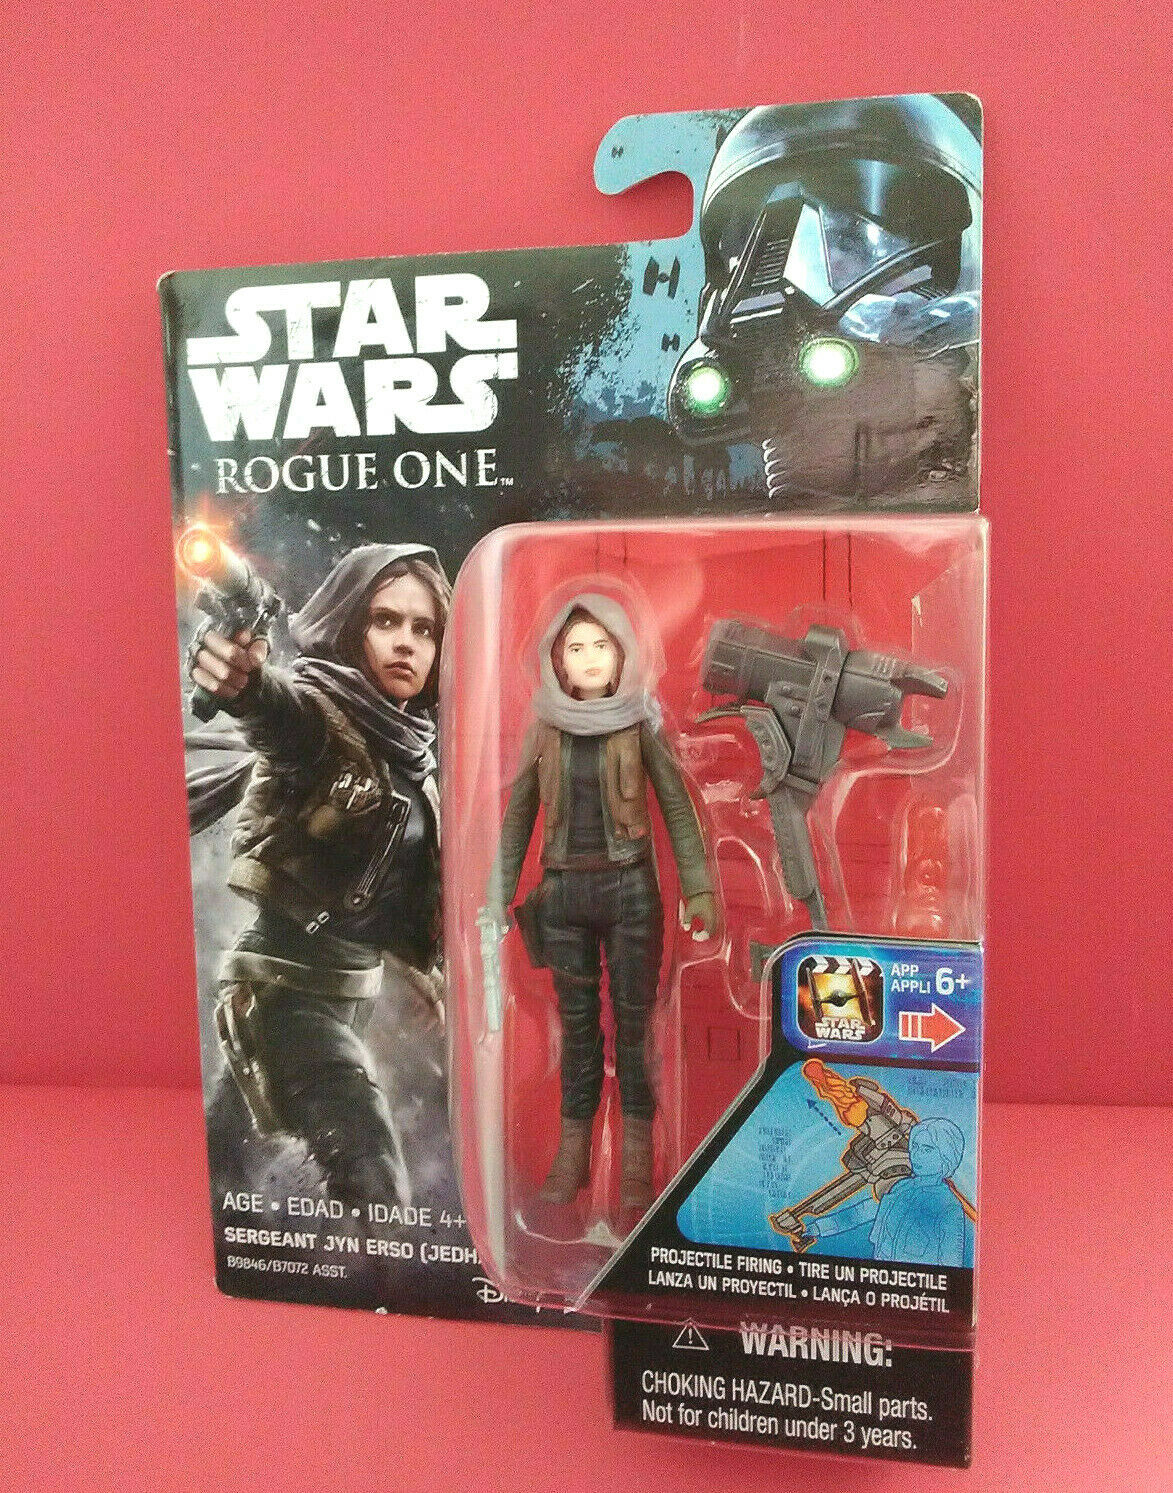 StarWars collection : STAR WARS - SERGEANT JYN ERSO - ROGUE ONE - FIGURINE 10 CM - 2016 - R 5992